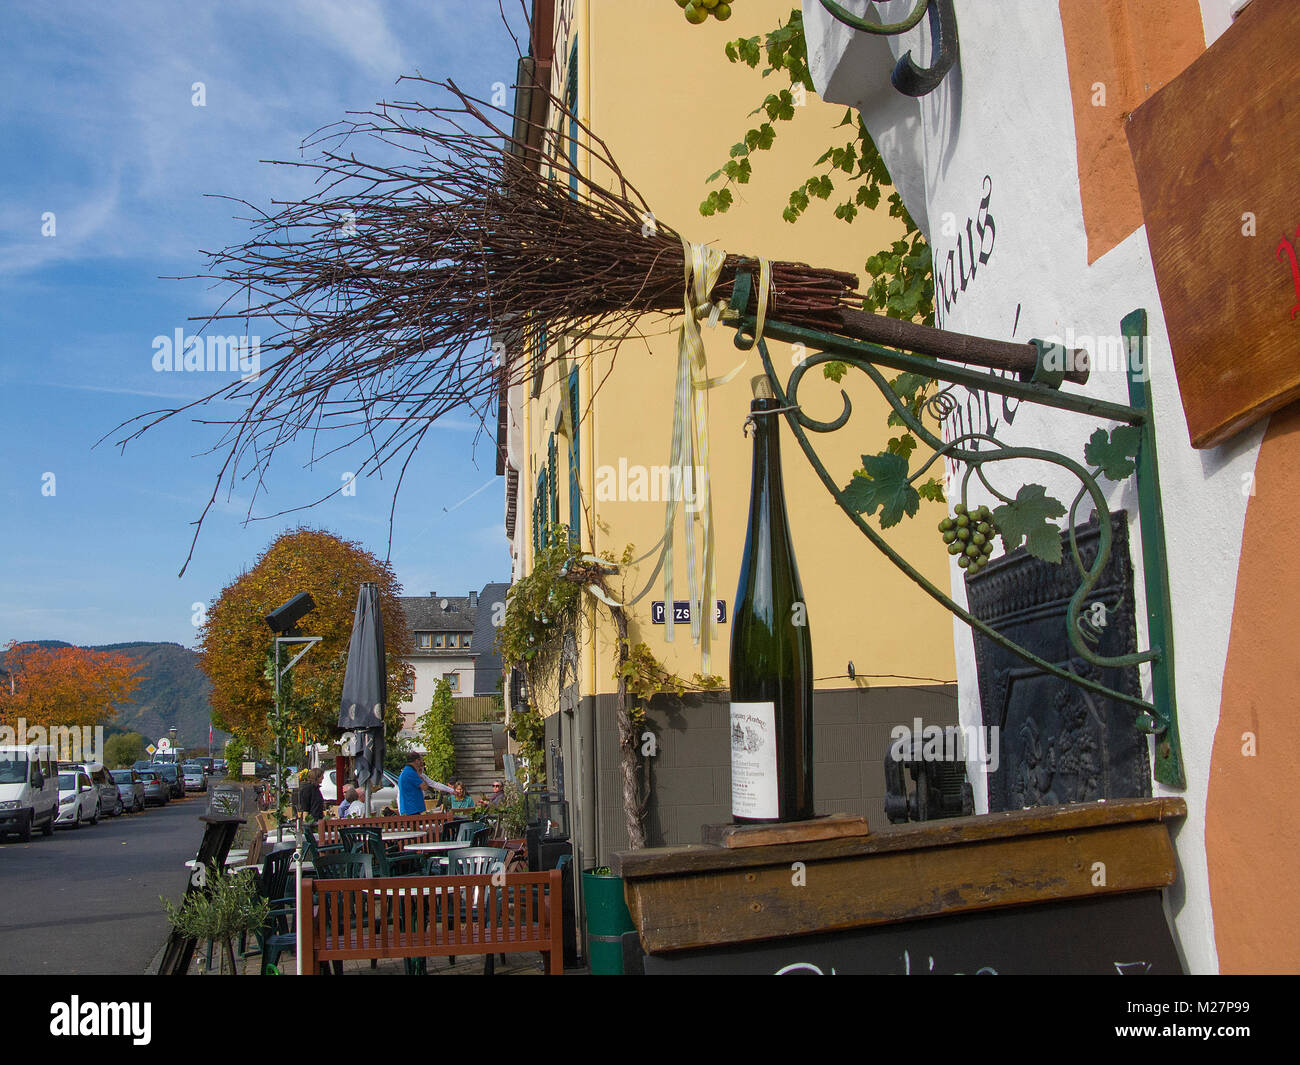 Gastronomy symbol stock photos gastronomy symbol stock images alamy the broom is a symbol for a wine tavern which selling homegrown wine wine village biocorpaavc Gallery